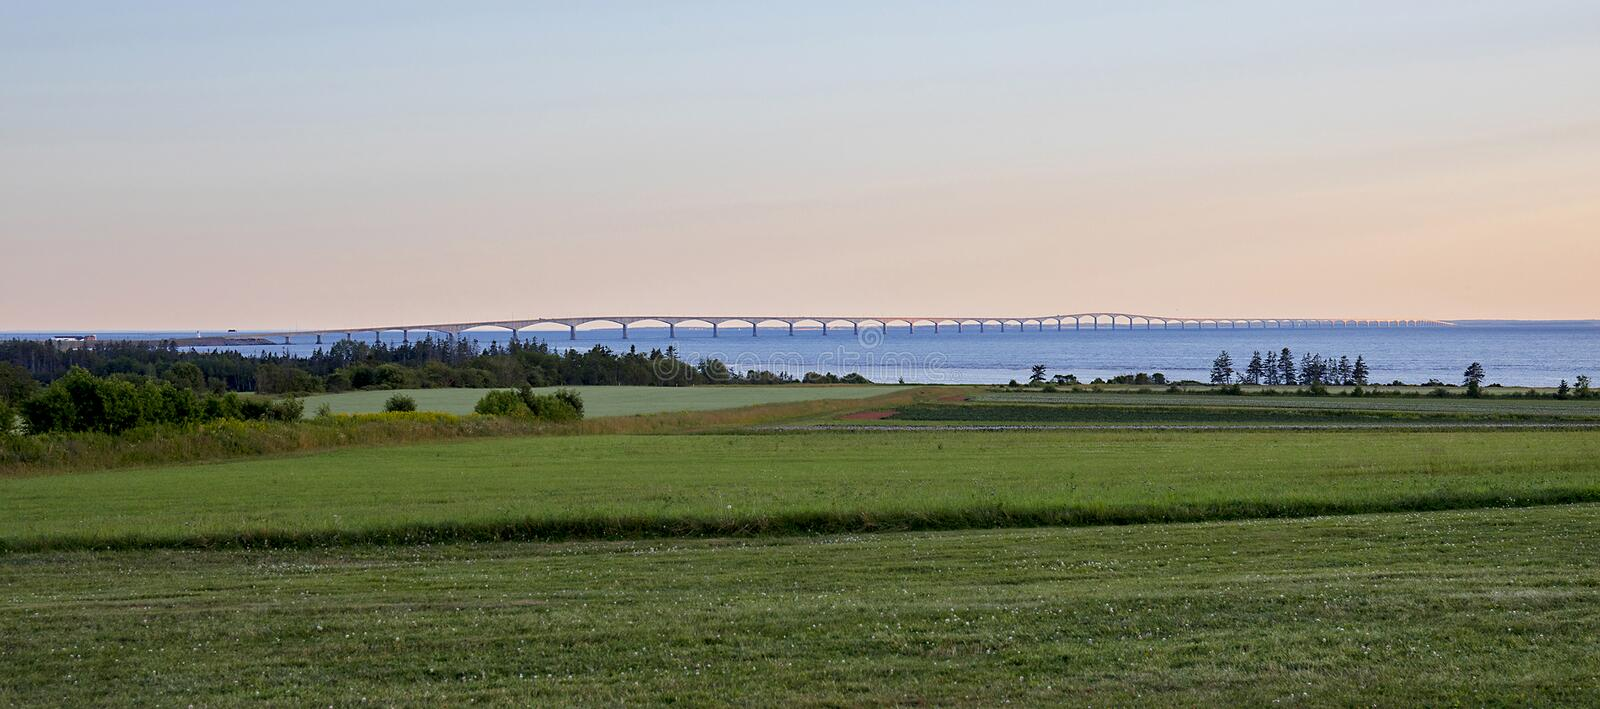 Full Length Confederation Bridge. The full length of the Confederation Bridge, seen in the distance from Prince Edward Island, Canada with agriculture fields in royalty free stock image